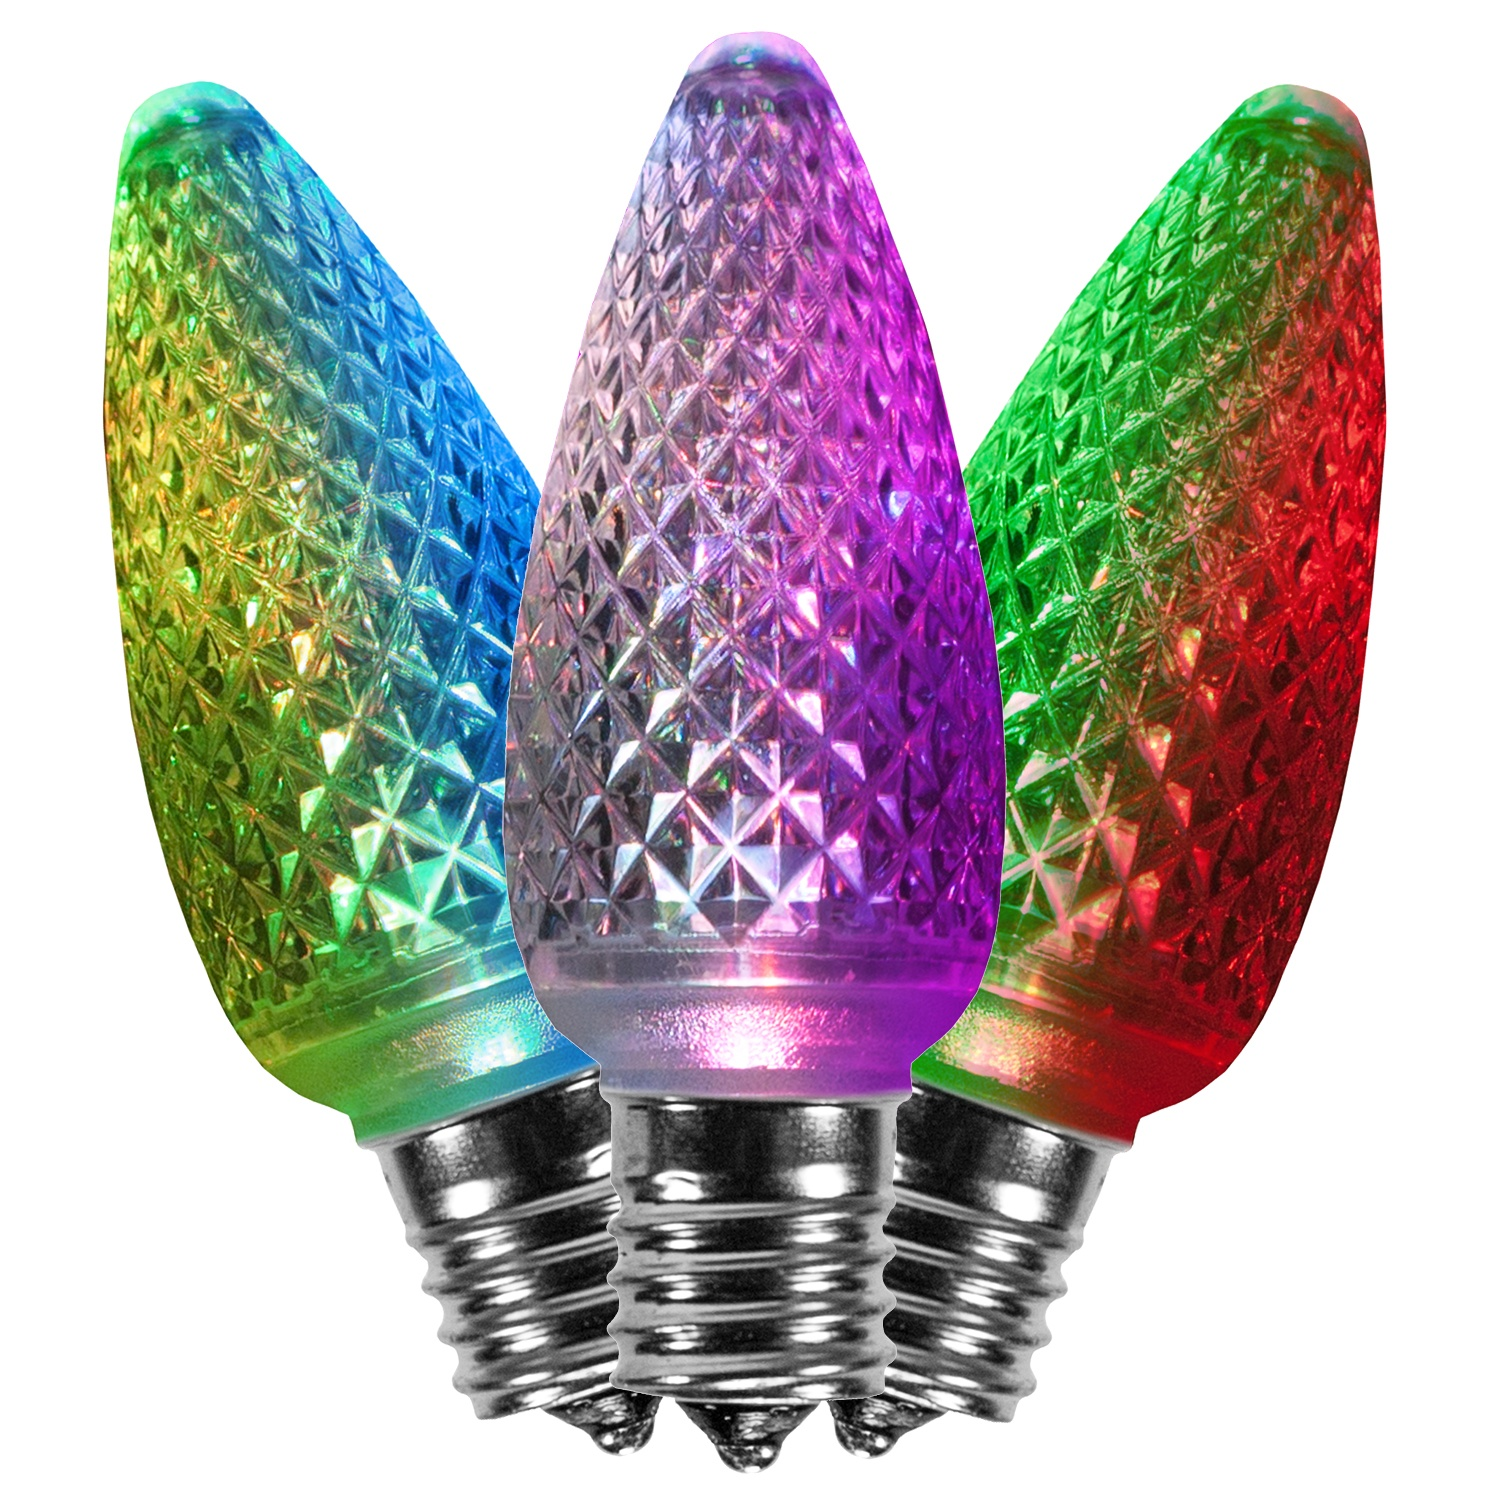 C9 Color Changing Multicolor Morphing Bulbs